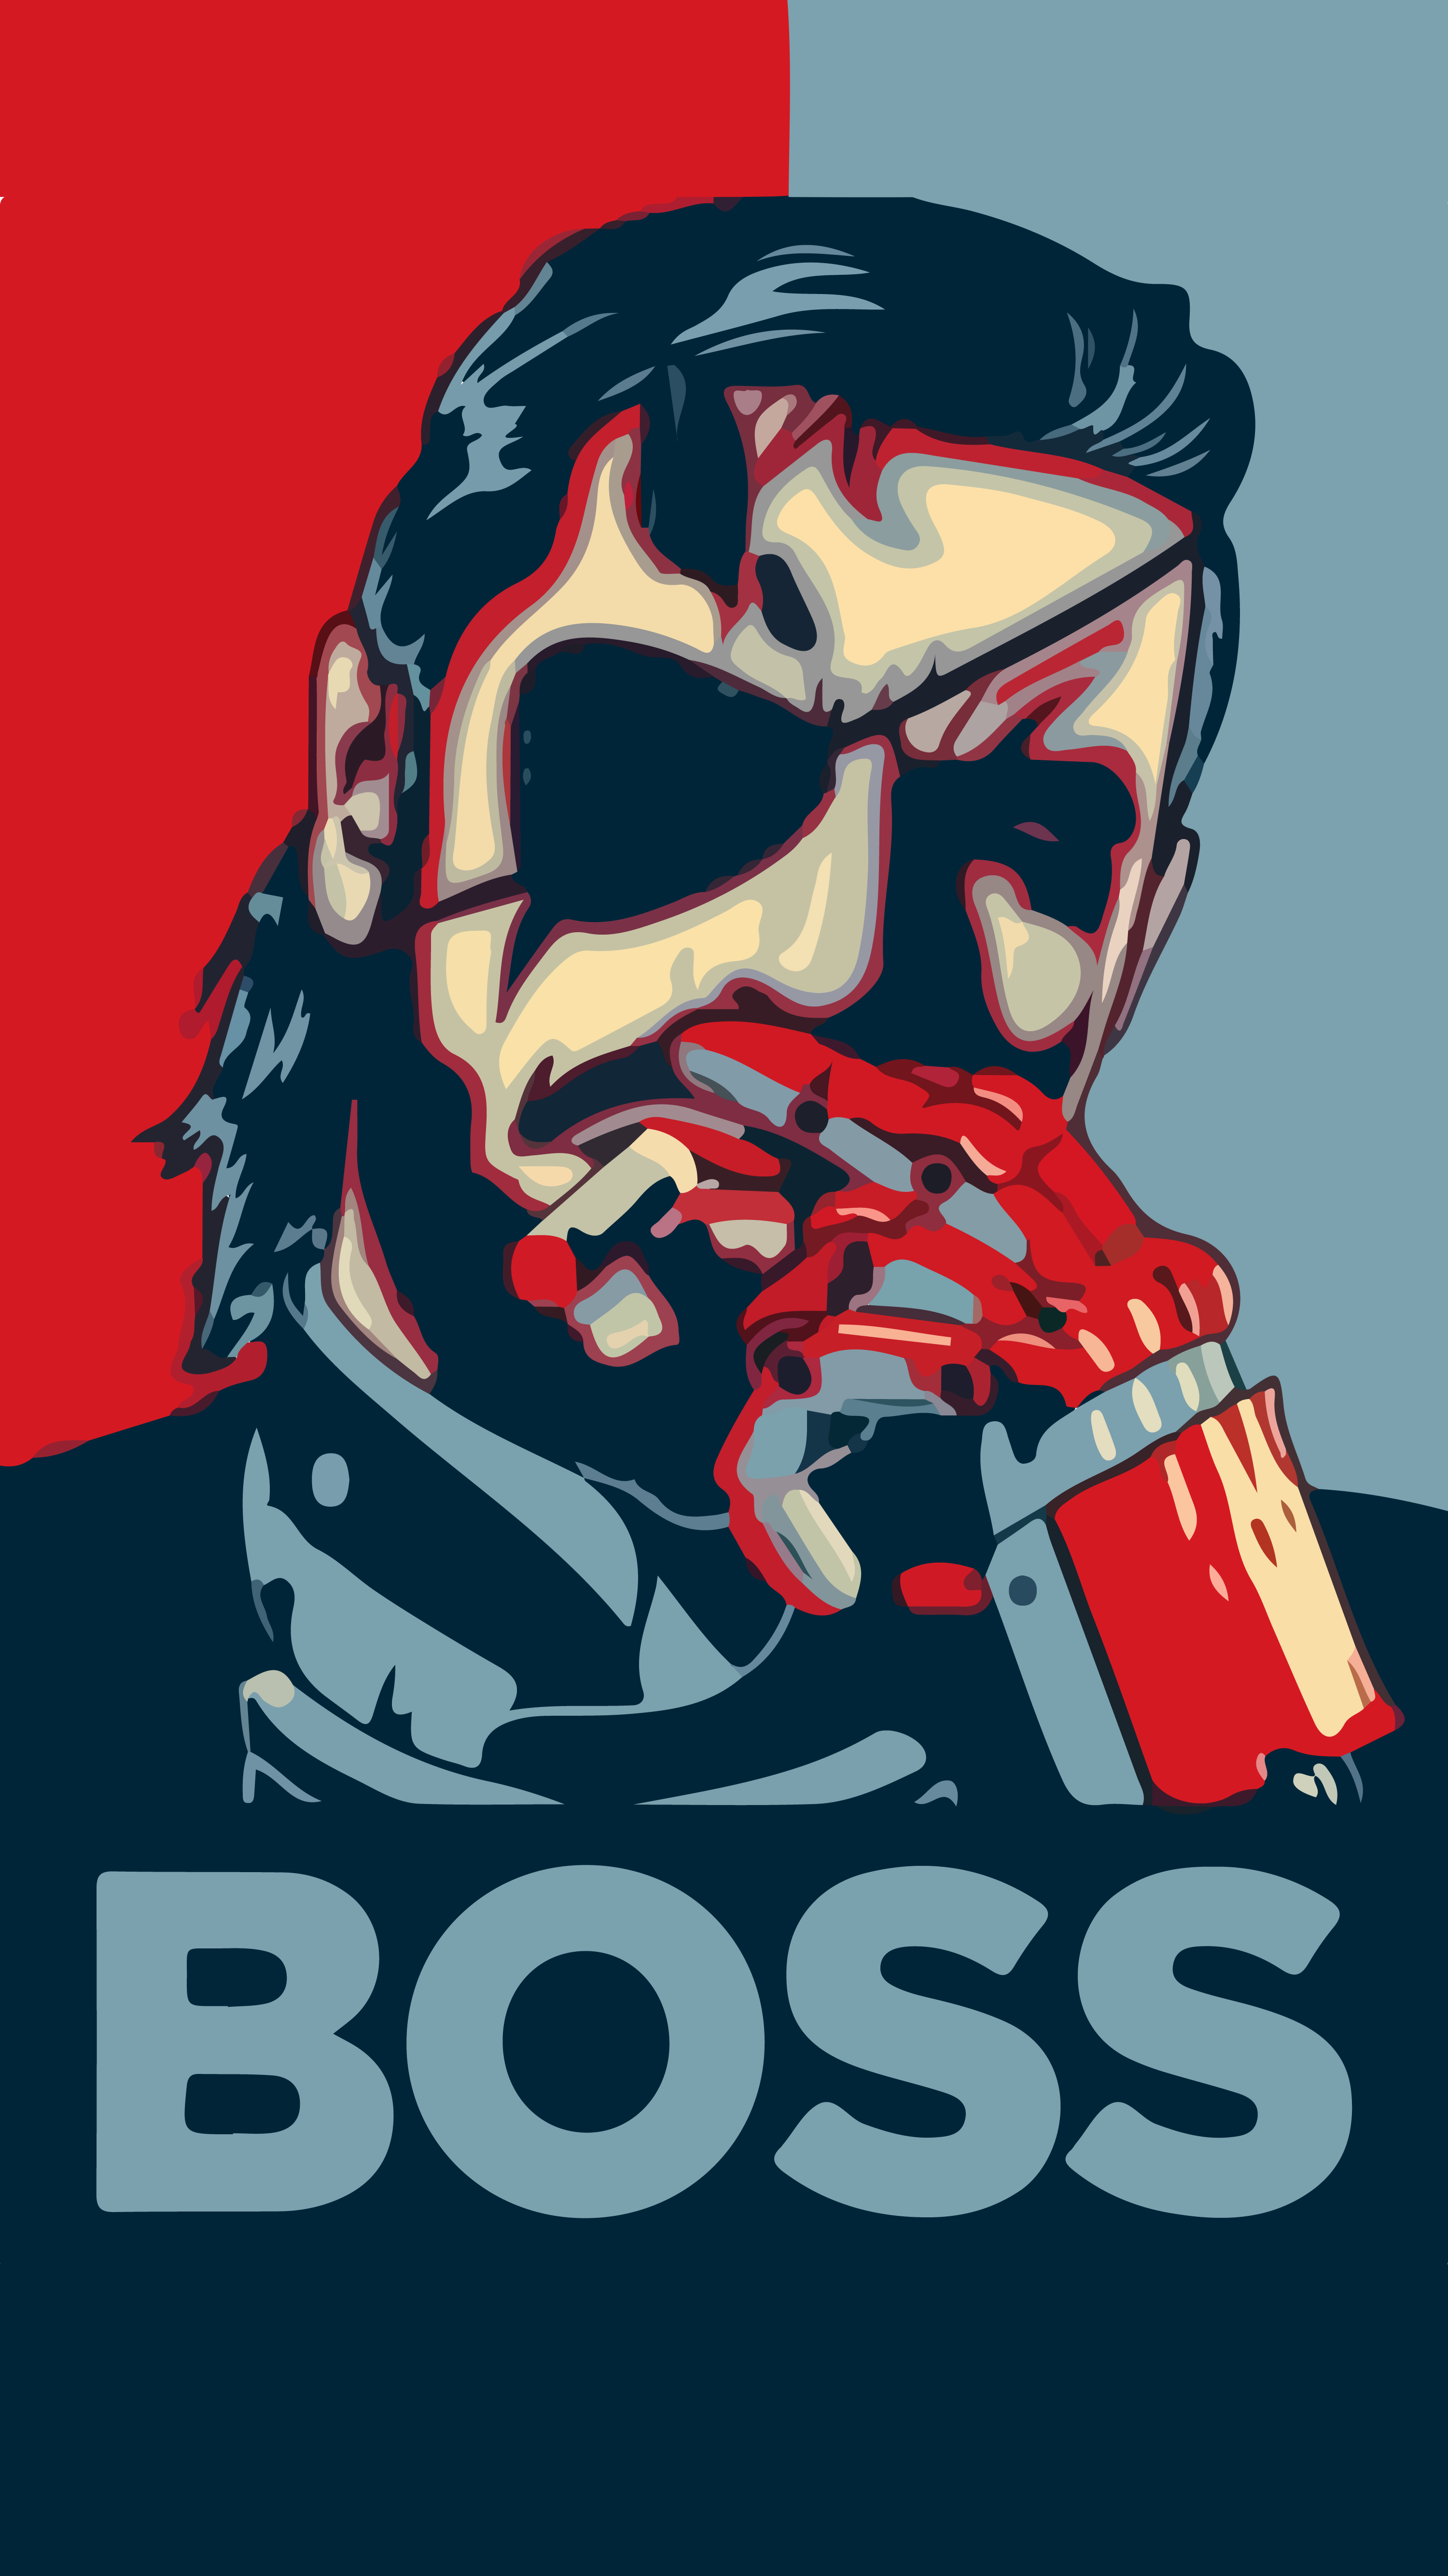 Boss I Just Edit That Pic To Make It A Wallpaper For Iphone 6 And 7 Metal Gear Metal Gear Series Metal Gear Solid